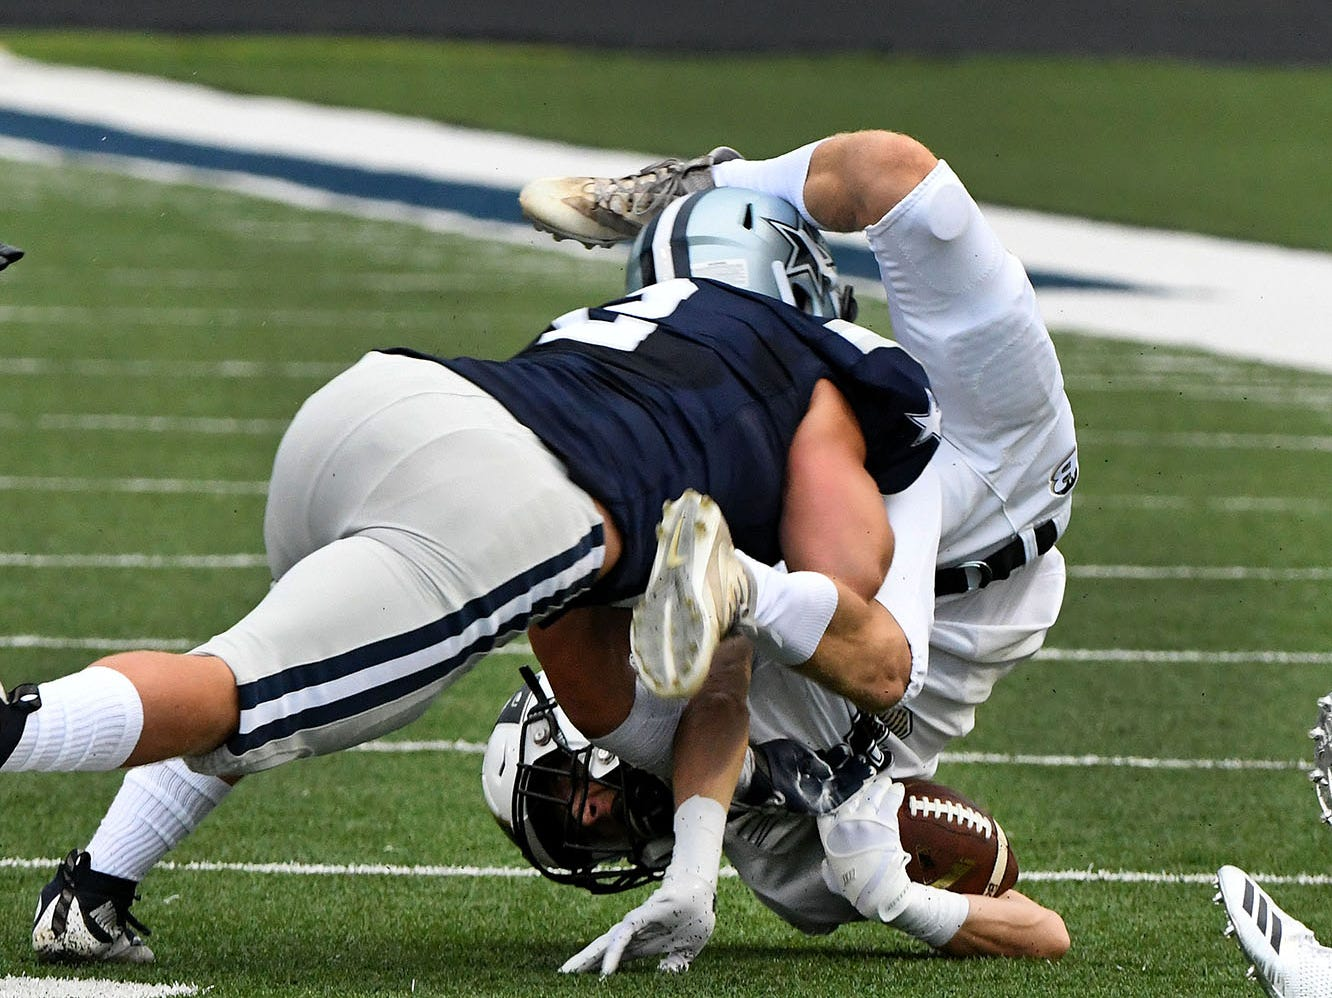 Bradley Central runner is taken down by Farragut's Caleb Kuhn (2) during their game Friday, August 17, 2018 at Farragut High School.